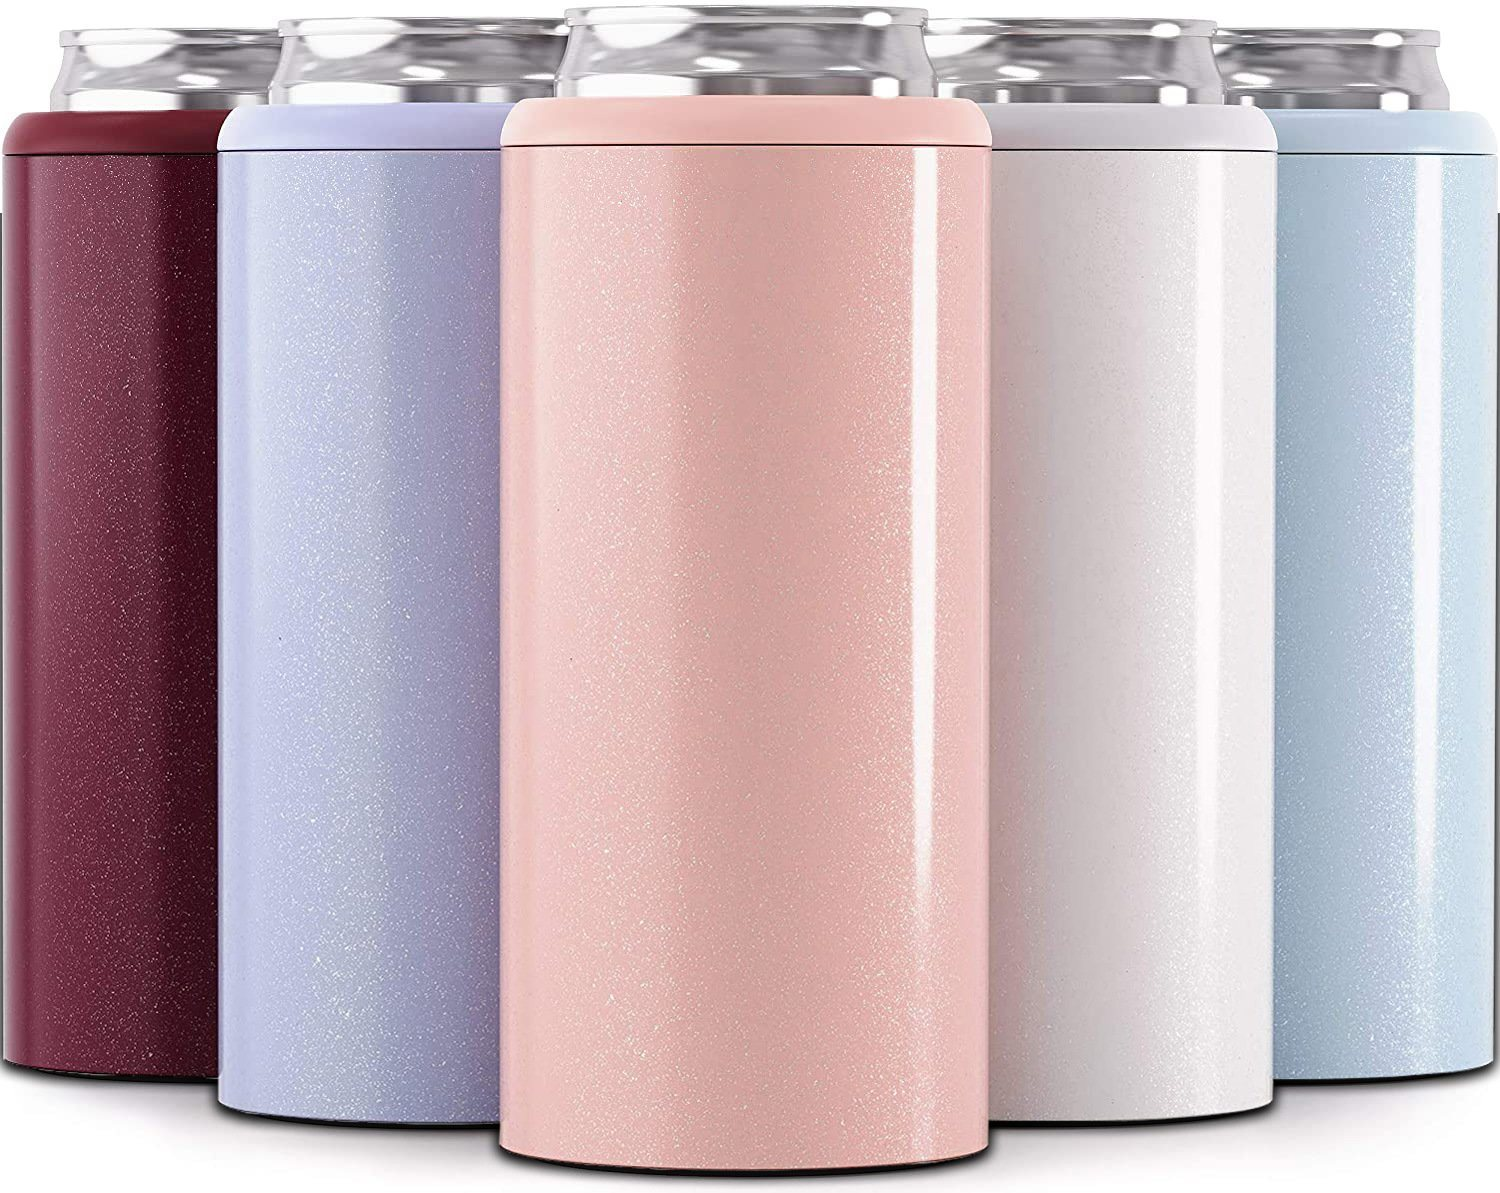 China New 12 Oz Skinny Can Cooler Double Wall Stainless Steel Can Holder For Party China Skinny Can And Skinny Can Cooler Price